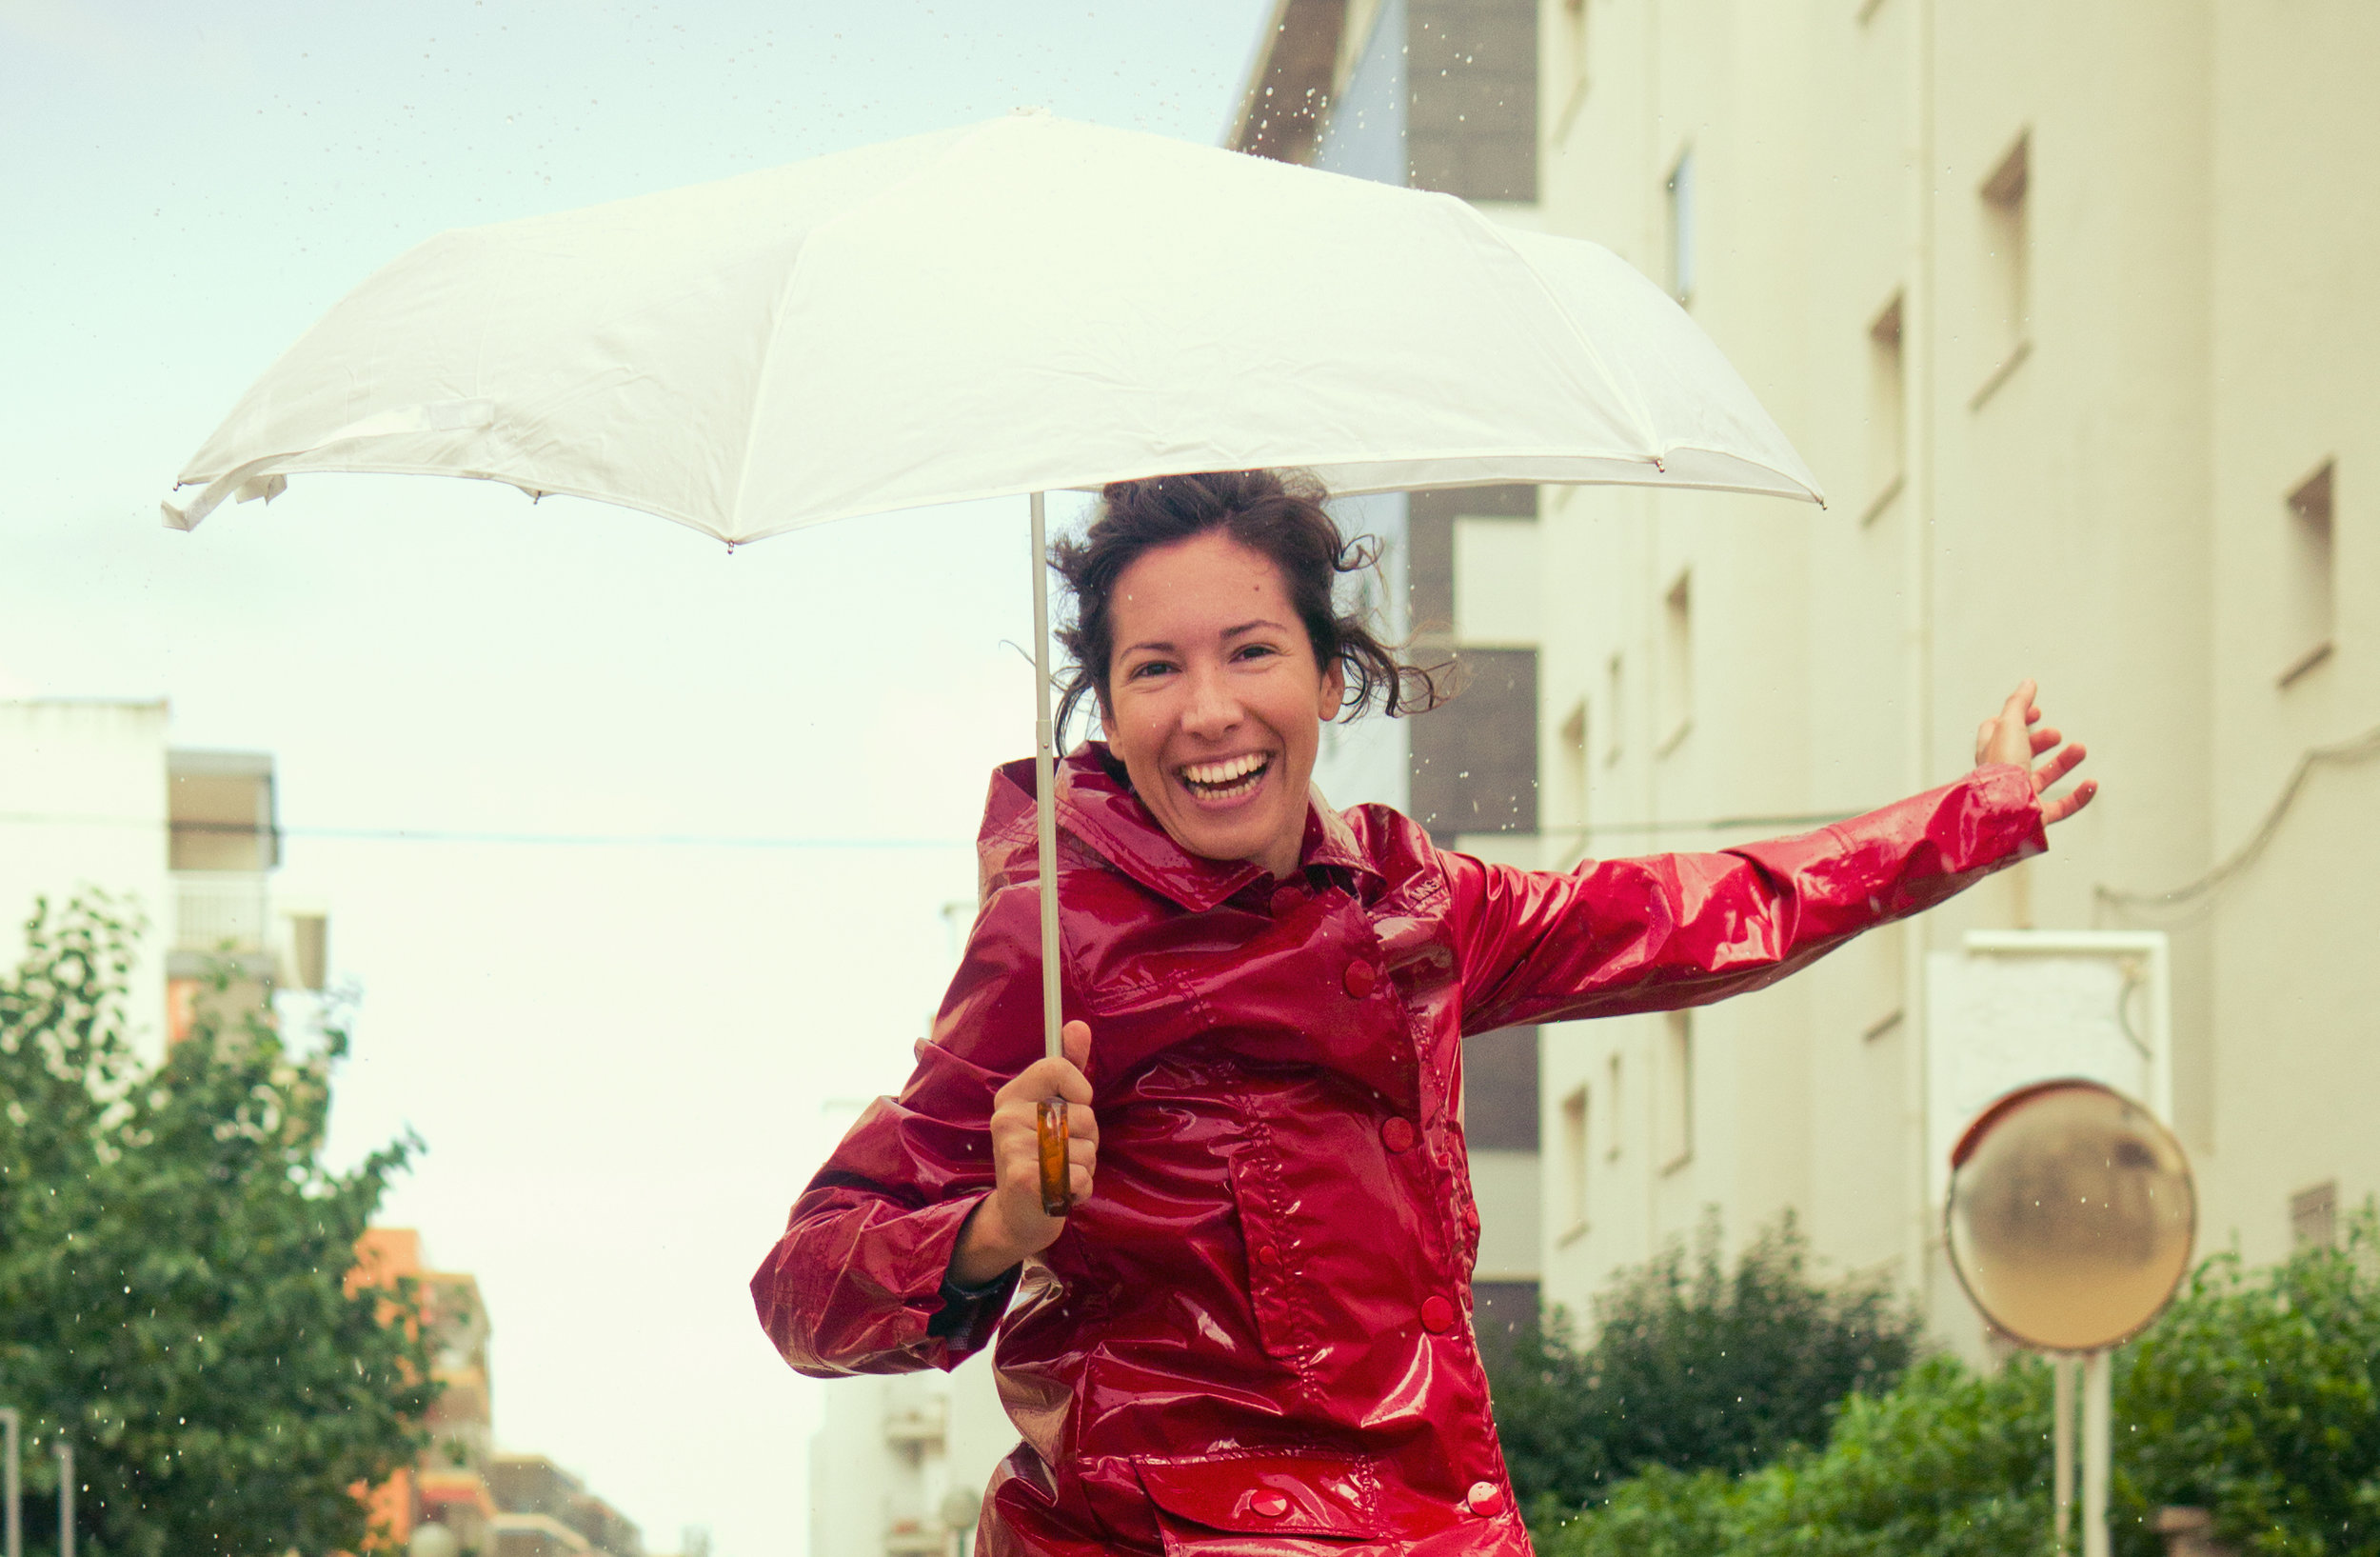 Singin' in the Rain: 11 Best Rain Jackets for Women That Are Actually Stylish